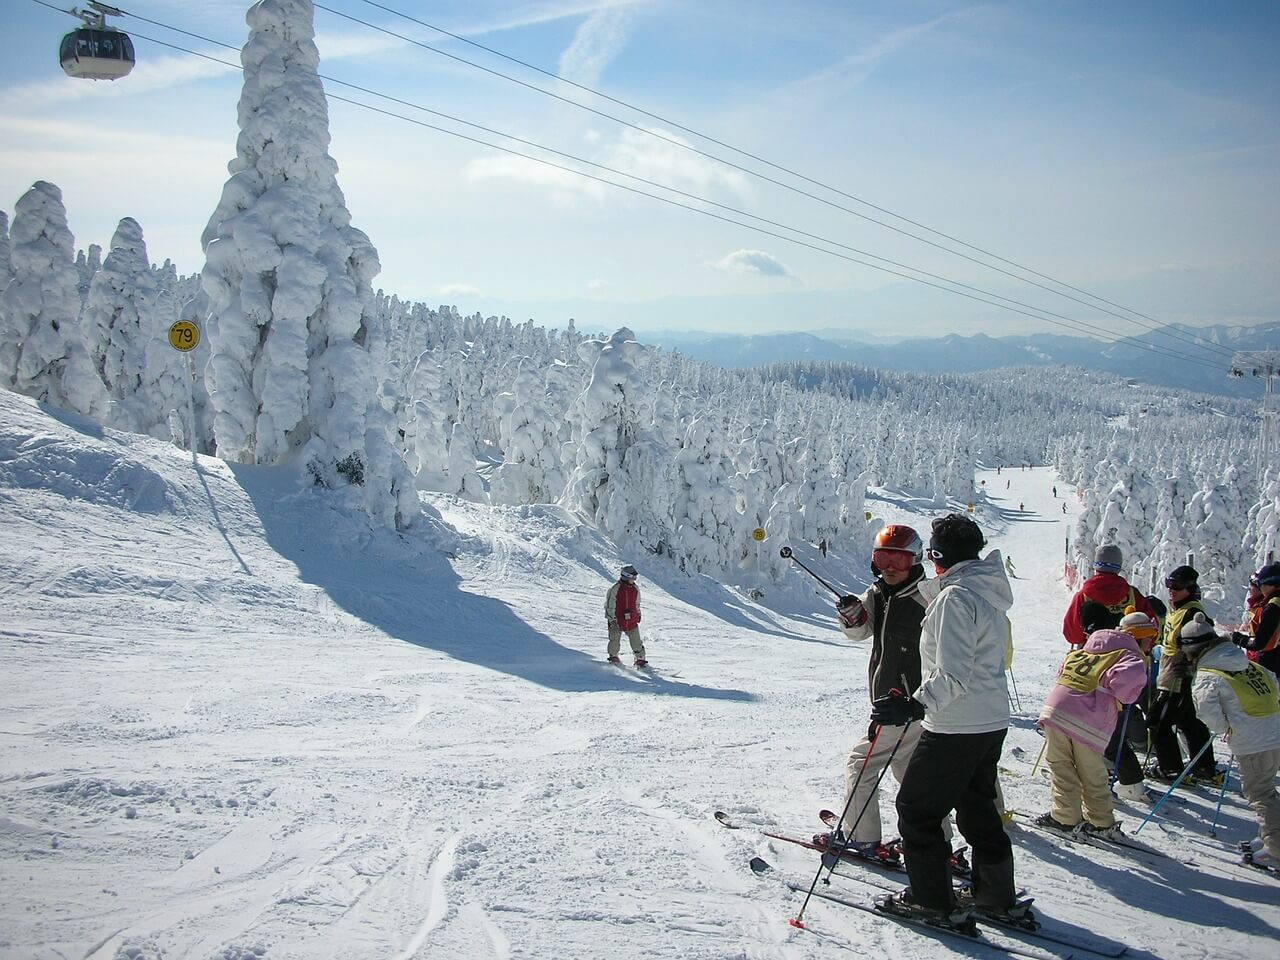 Family ski resort